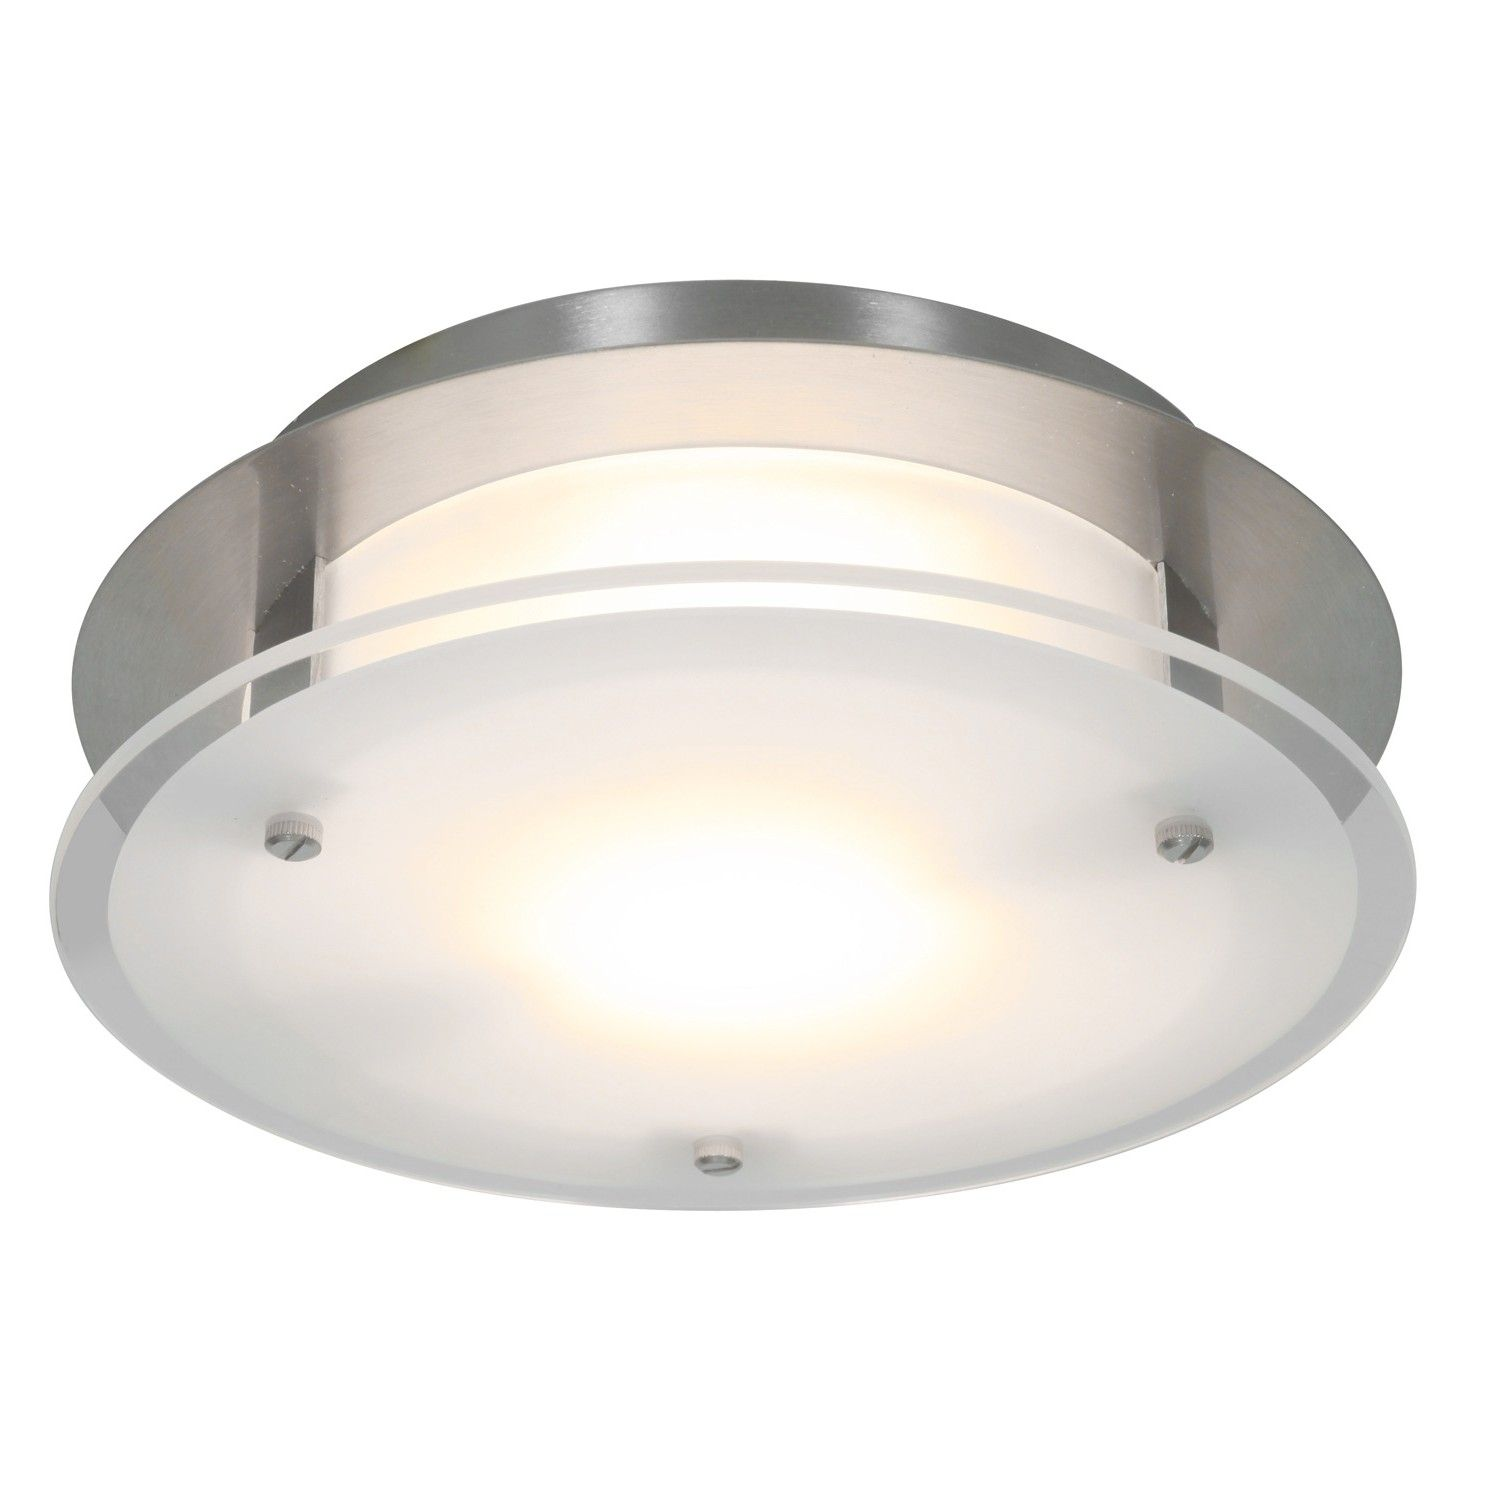 Bathroom Light Fans Bath Fans Bathroom Fans Lights Exhaust Fans